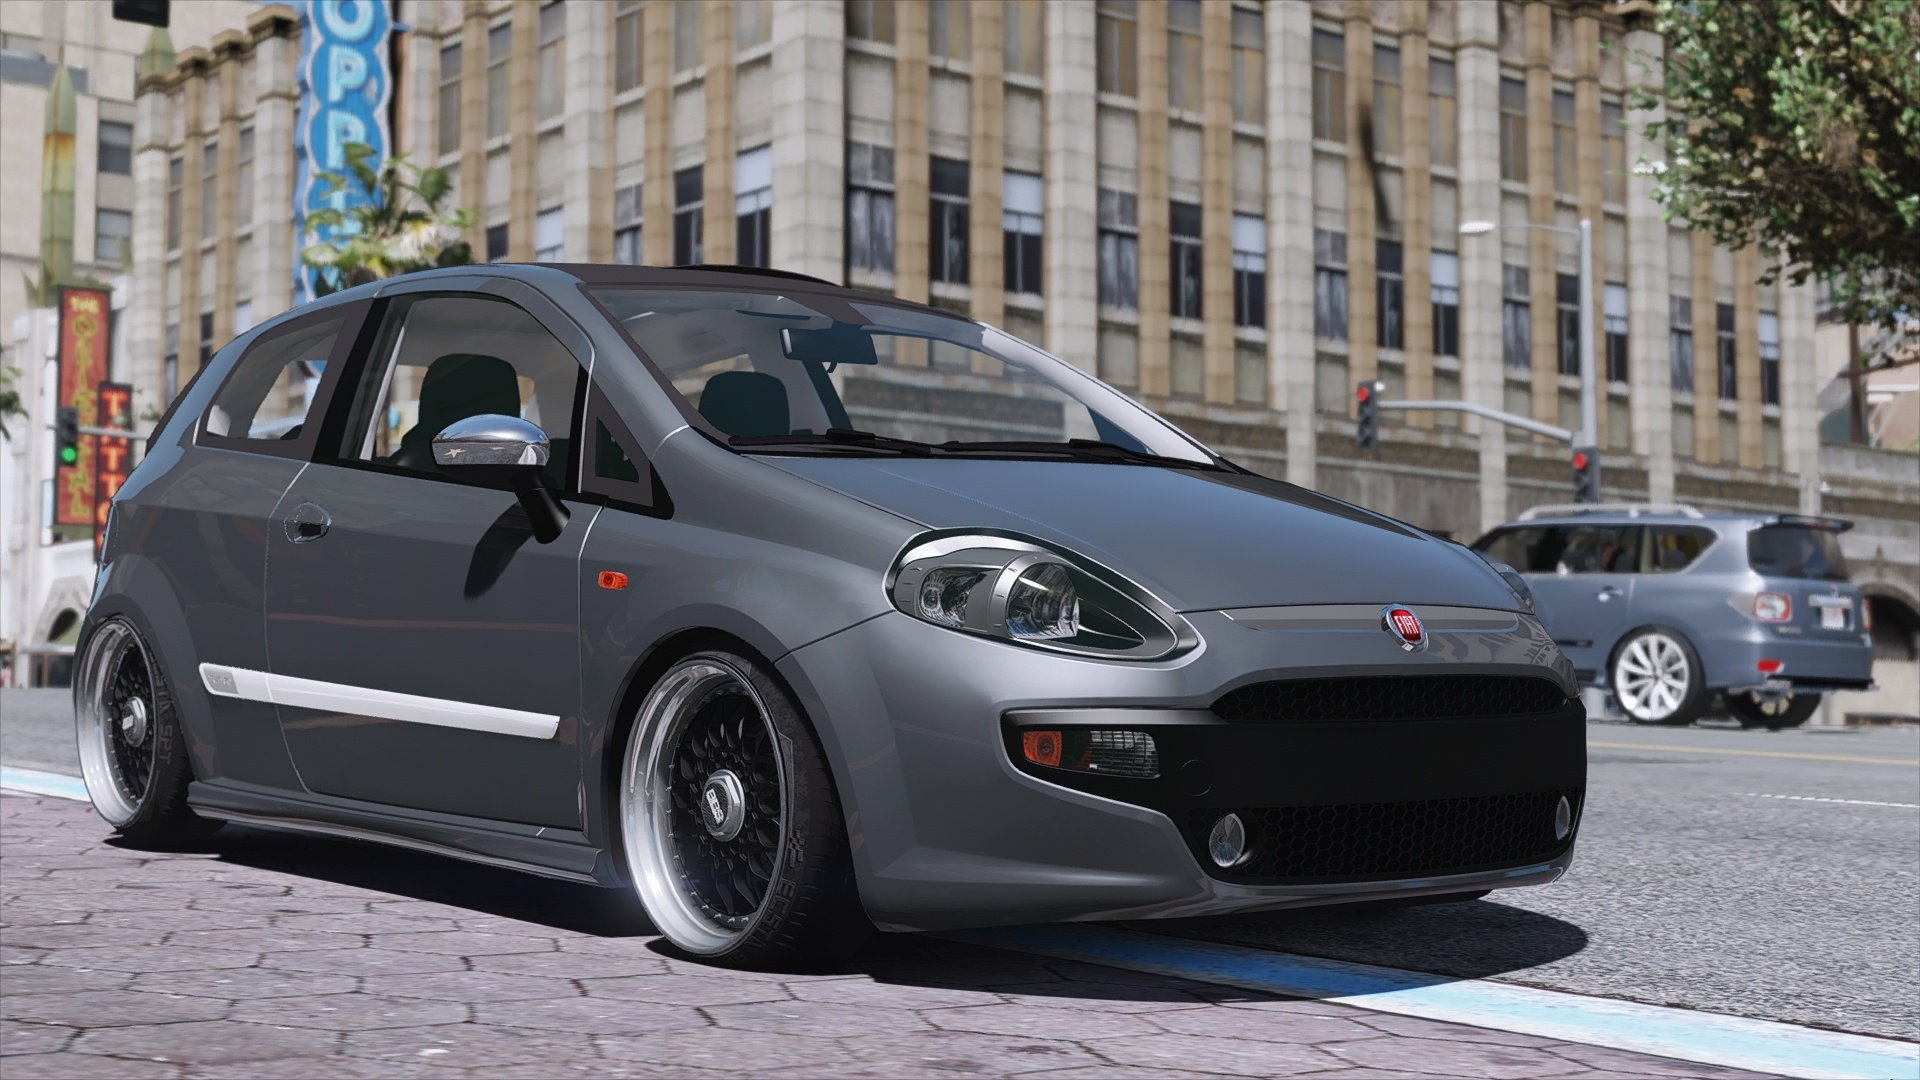 fiat punto evo sport 2010 add on replace vehicules pour gta v sur gta modding. Black Bedroom Furniture Sets. Home Design Ideas